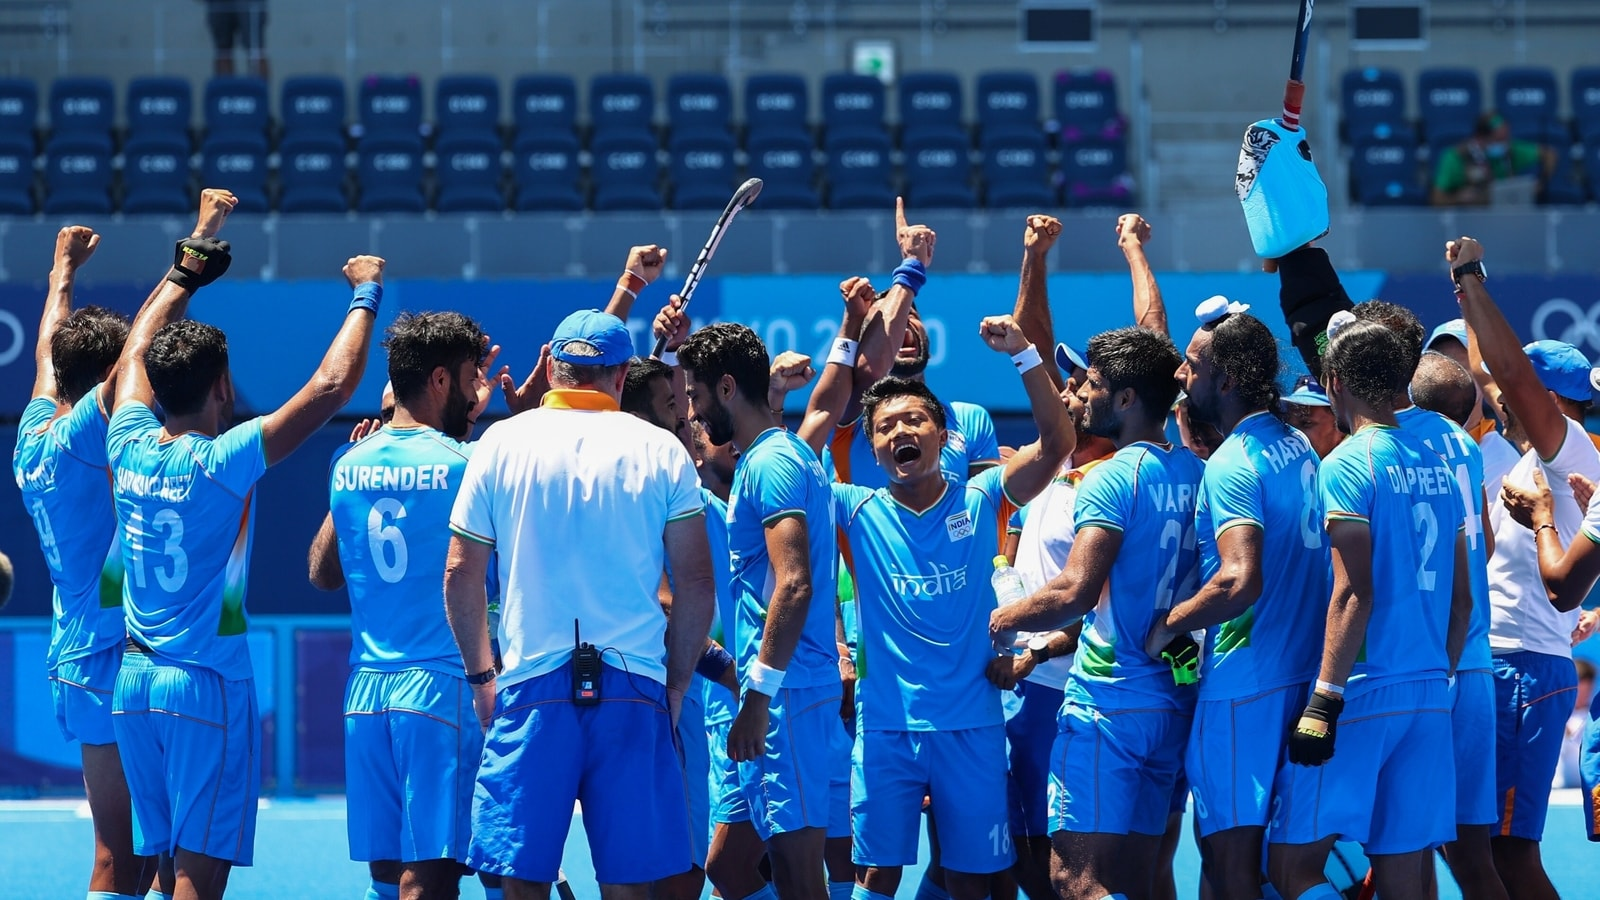 Olympics: India win bronze medal in Tokyo, first Olympic medal in hockey  since 1980 | Olympics - Hindustan Times